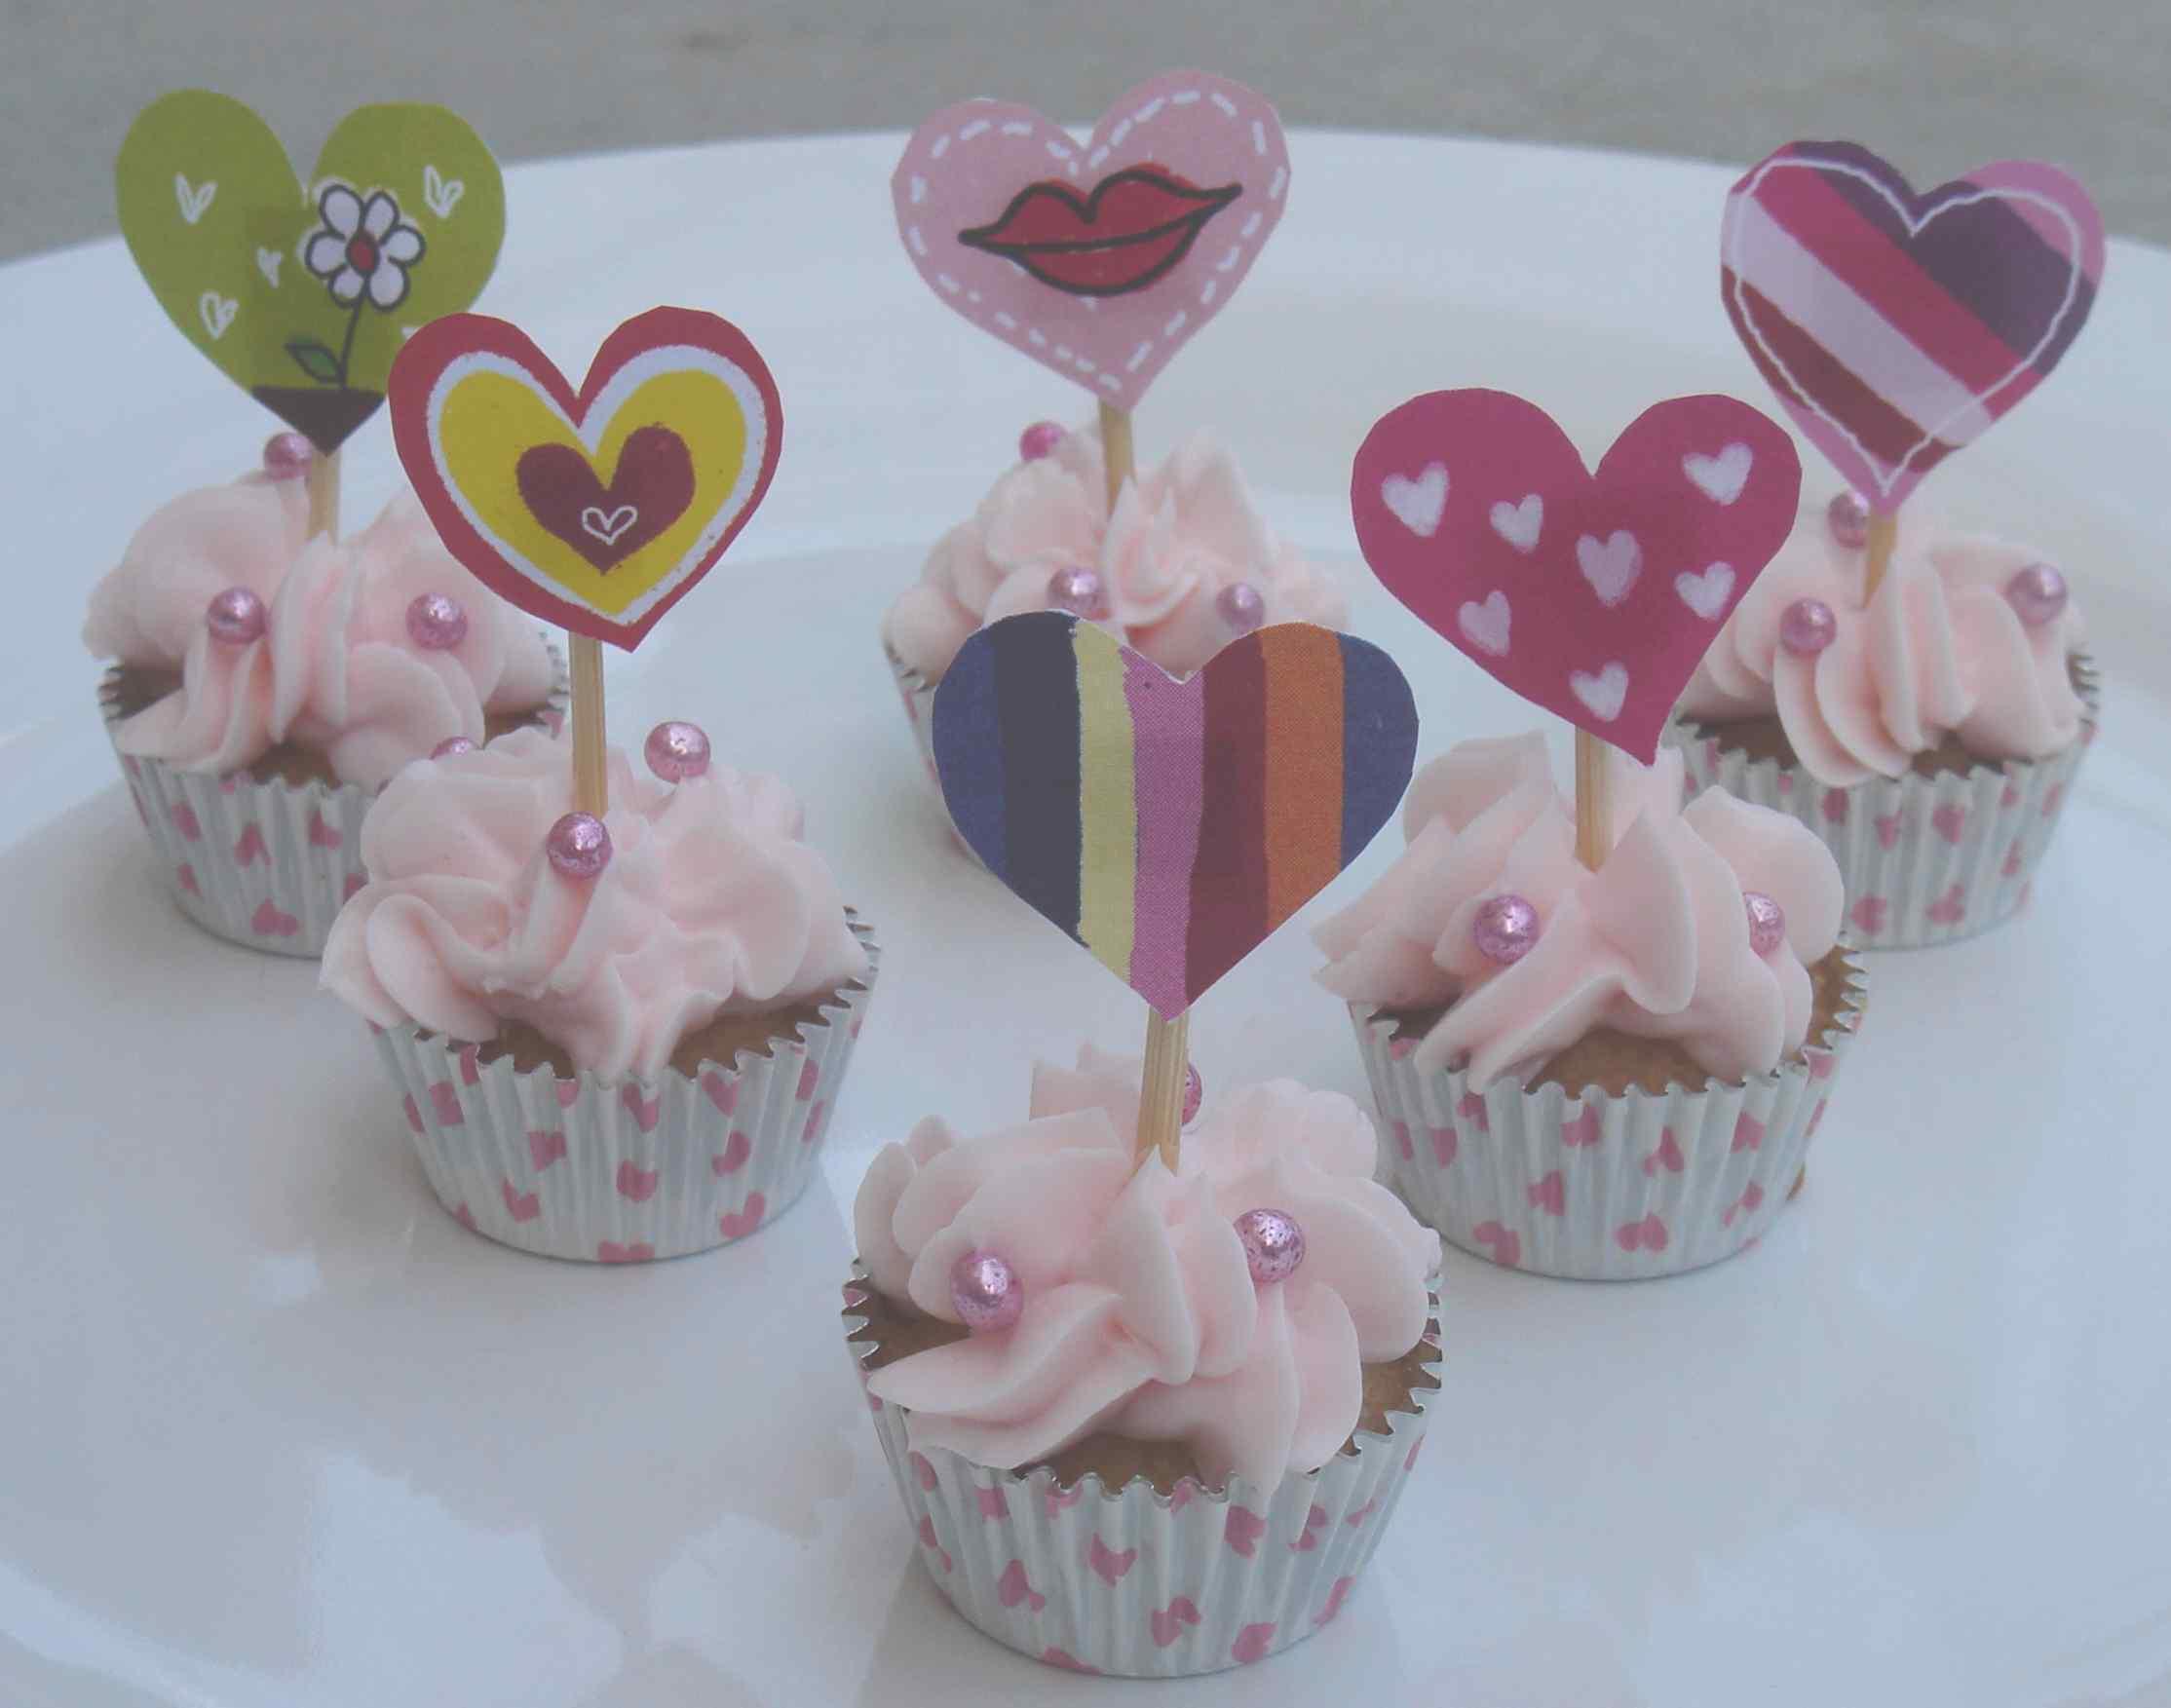 Decorating Cupcakes With Frosting